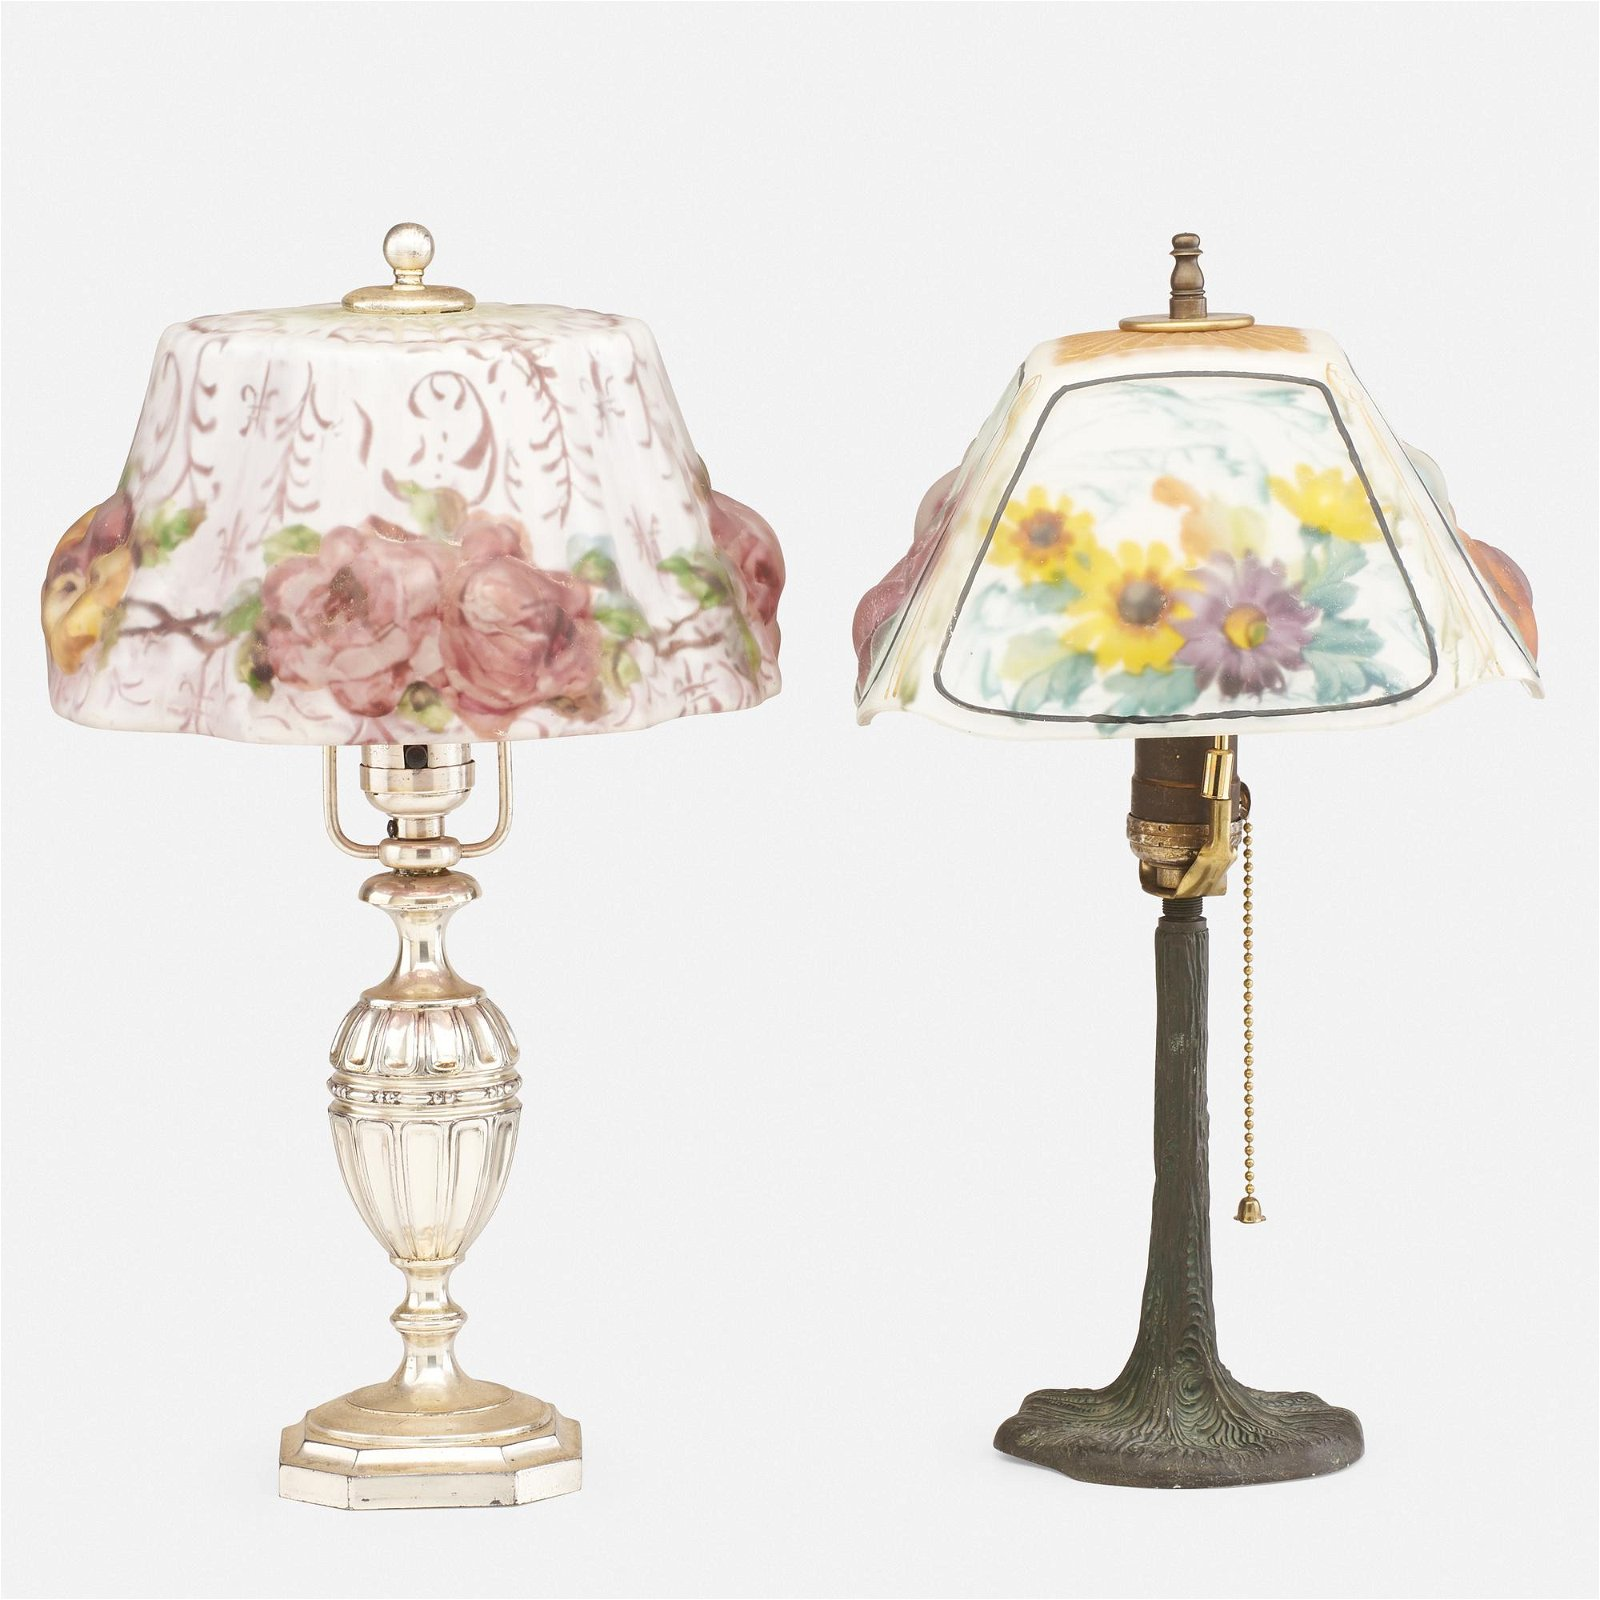 Pairpoint, Puffy boudoir lamps, set of two